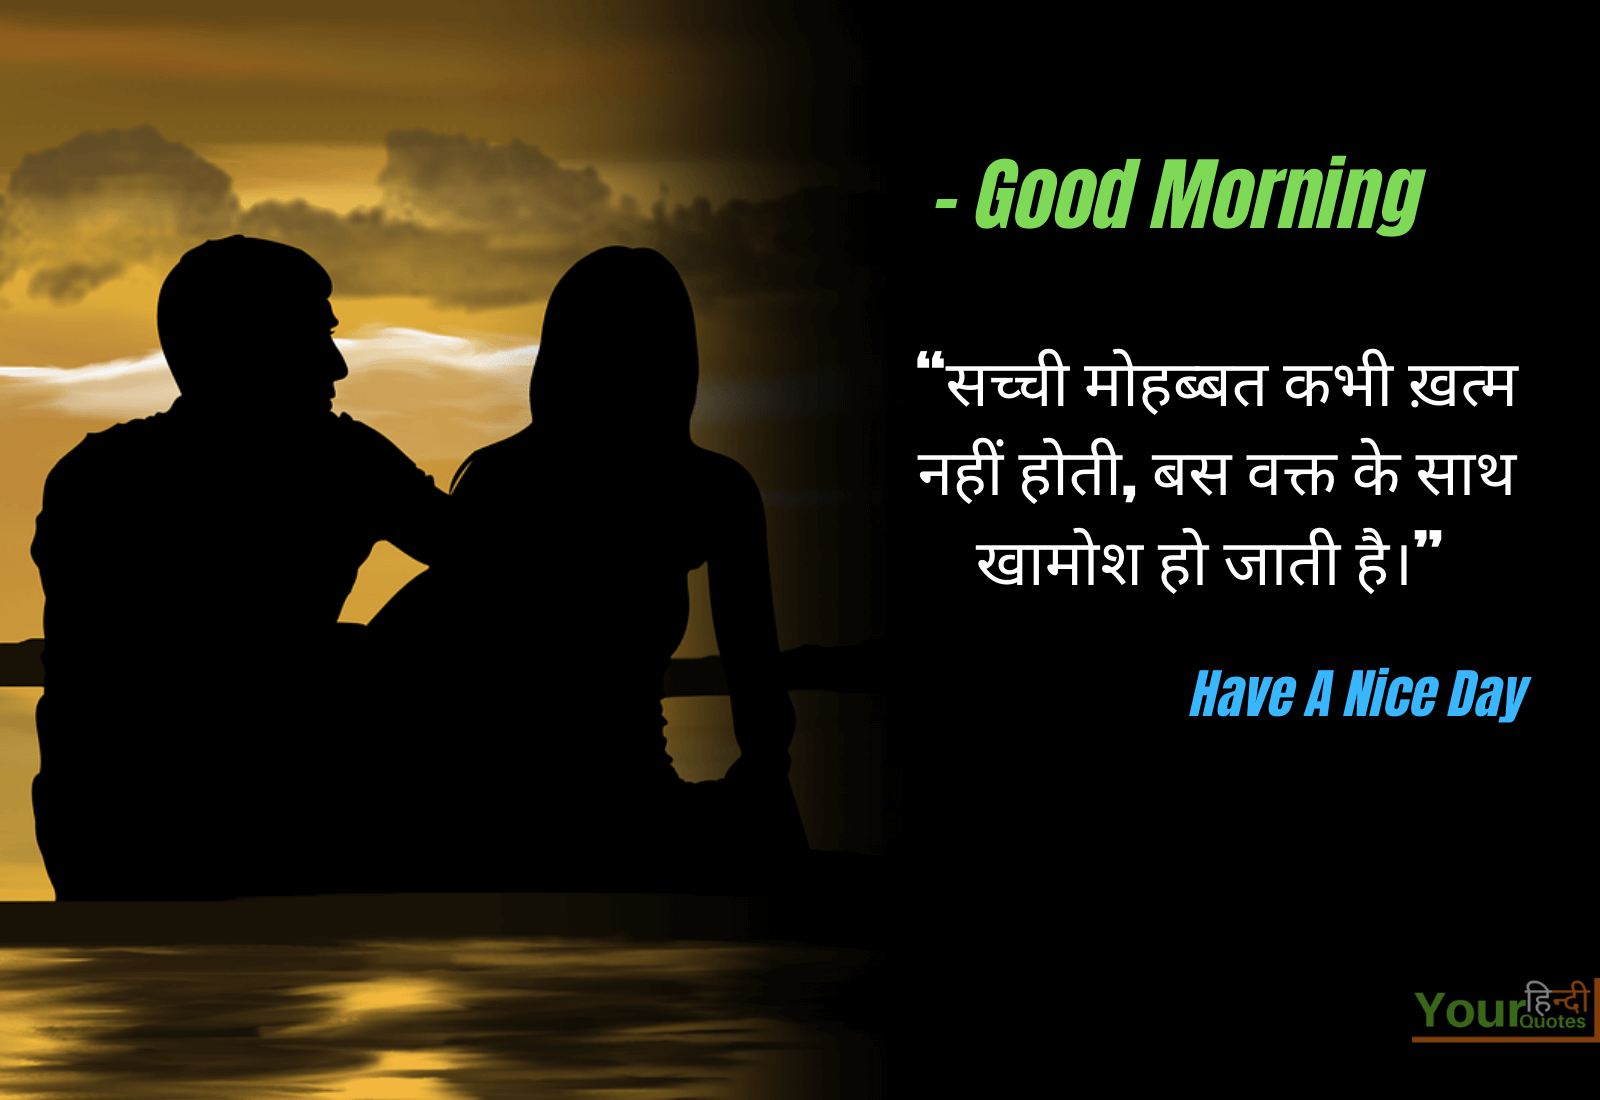 Good Morning Hindi Quotes Image